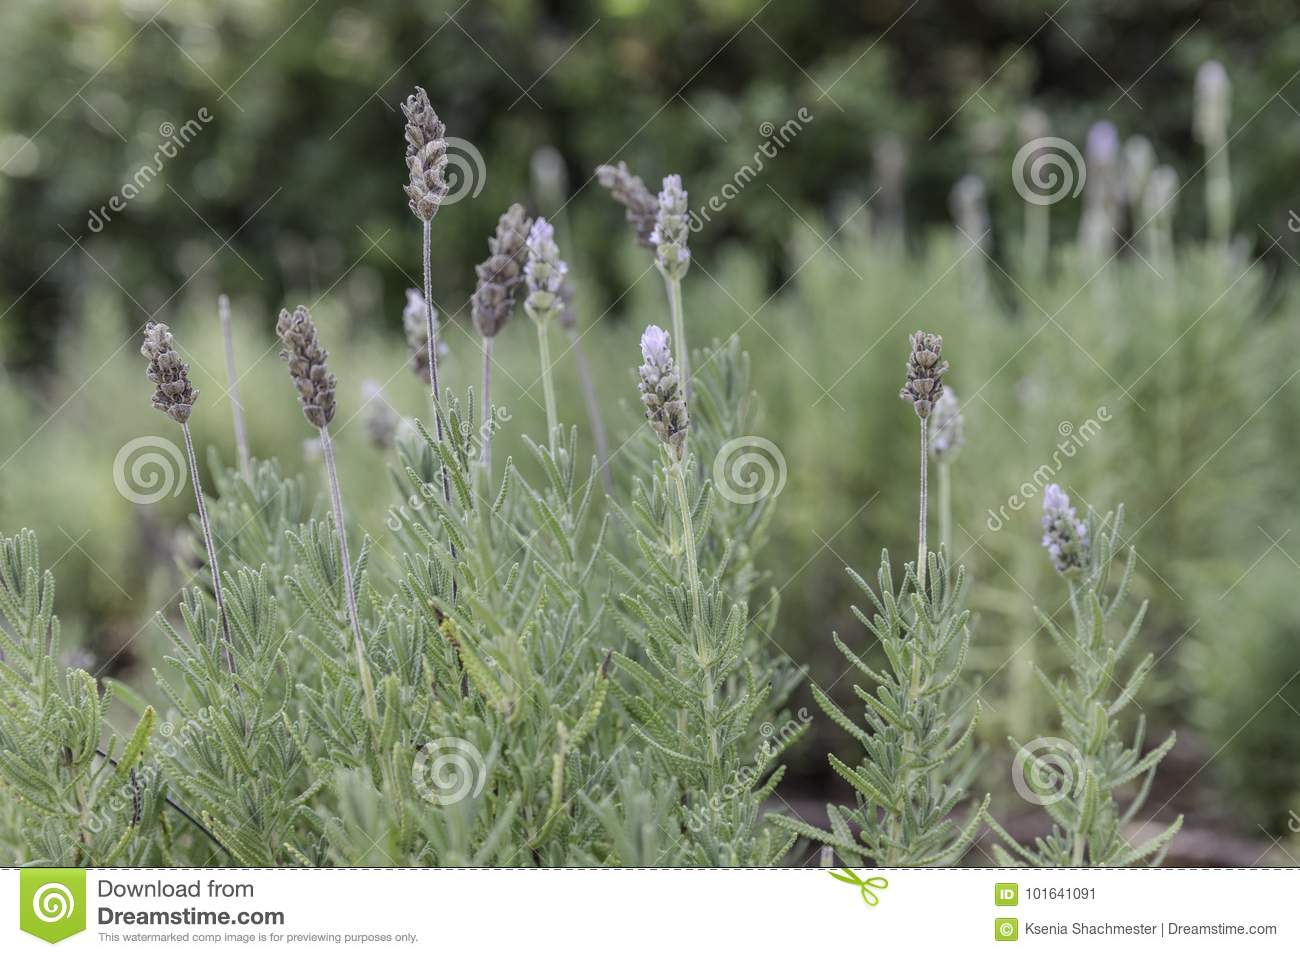 French lavender plant with flowers